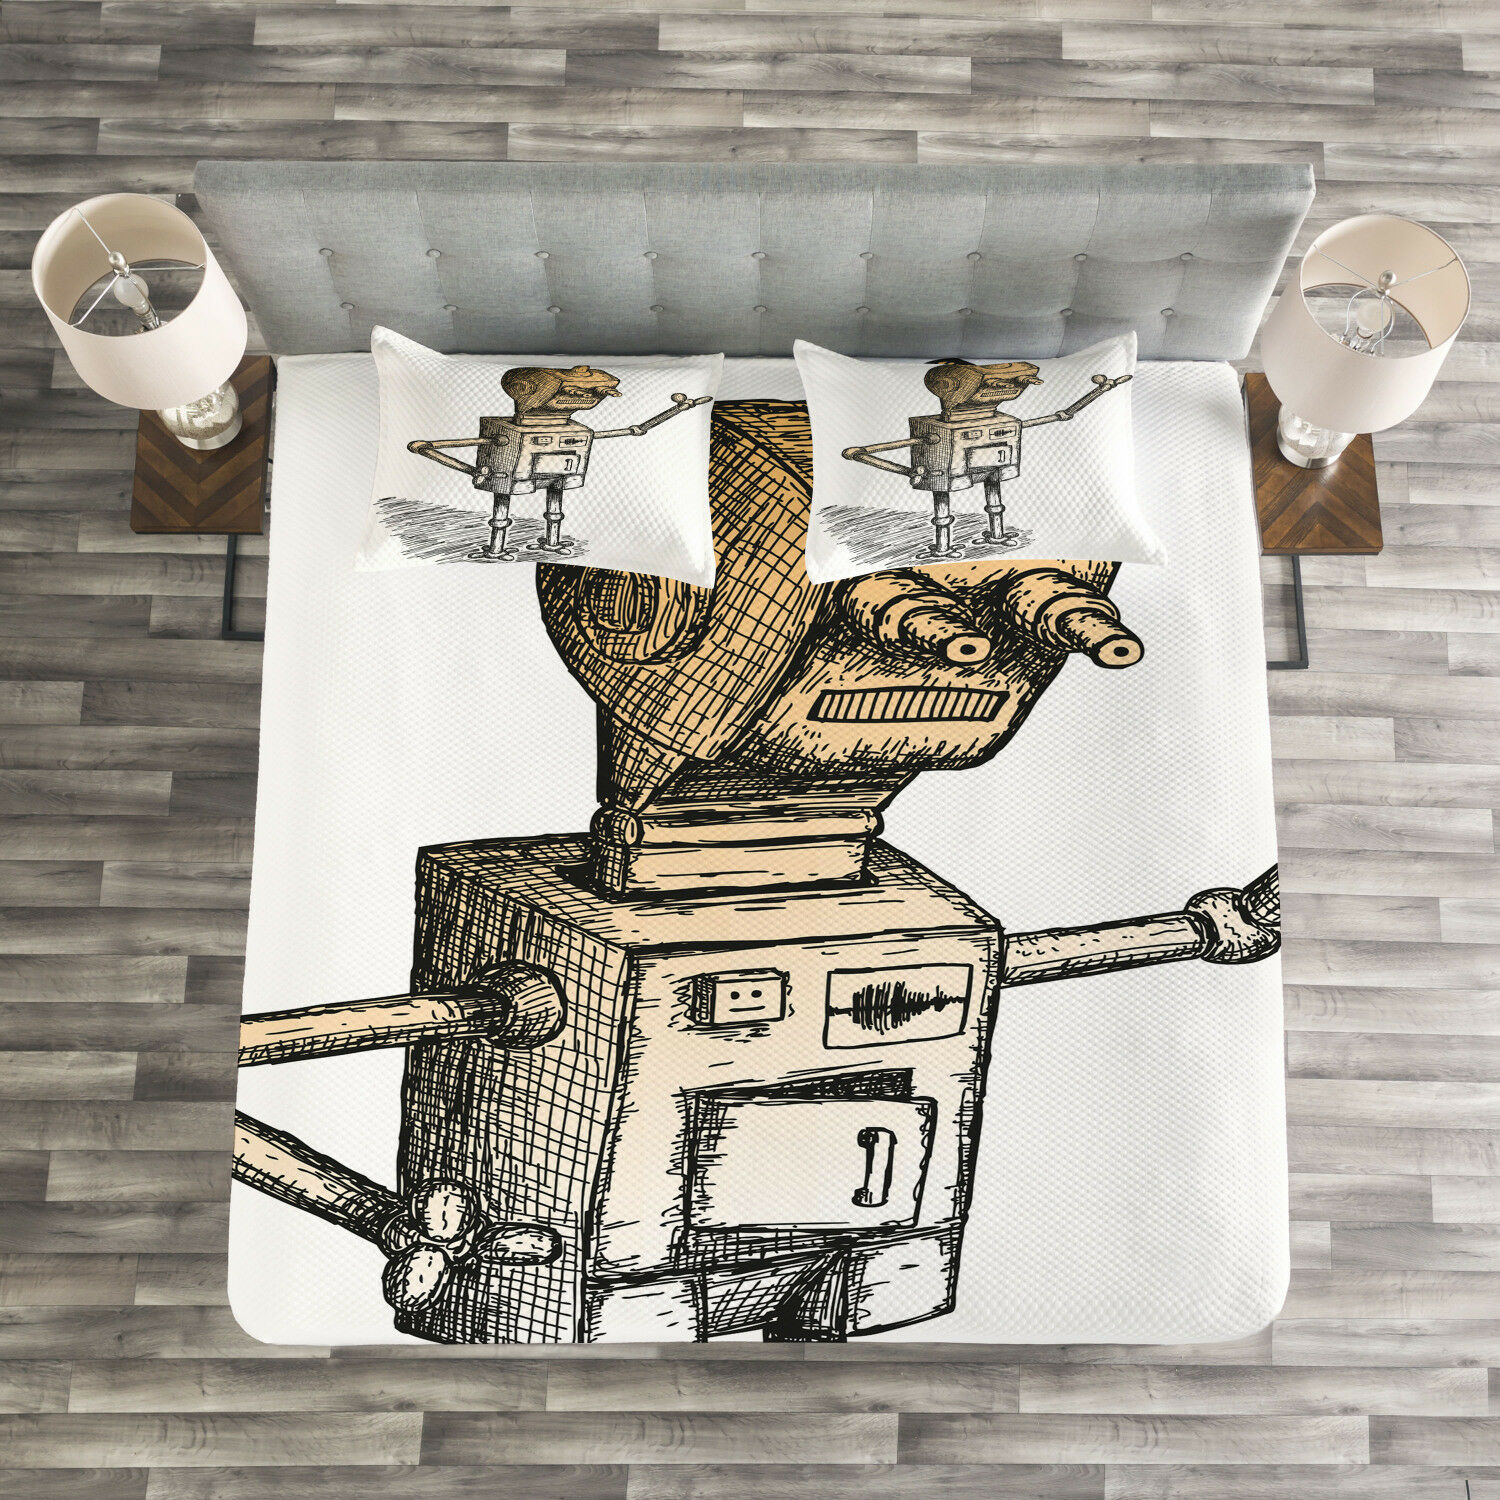 Humor Quilted Bedspread & Pillow Shams Set, Sketchy Futuristic Robot Print